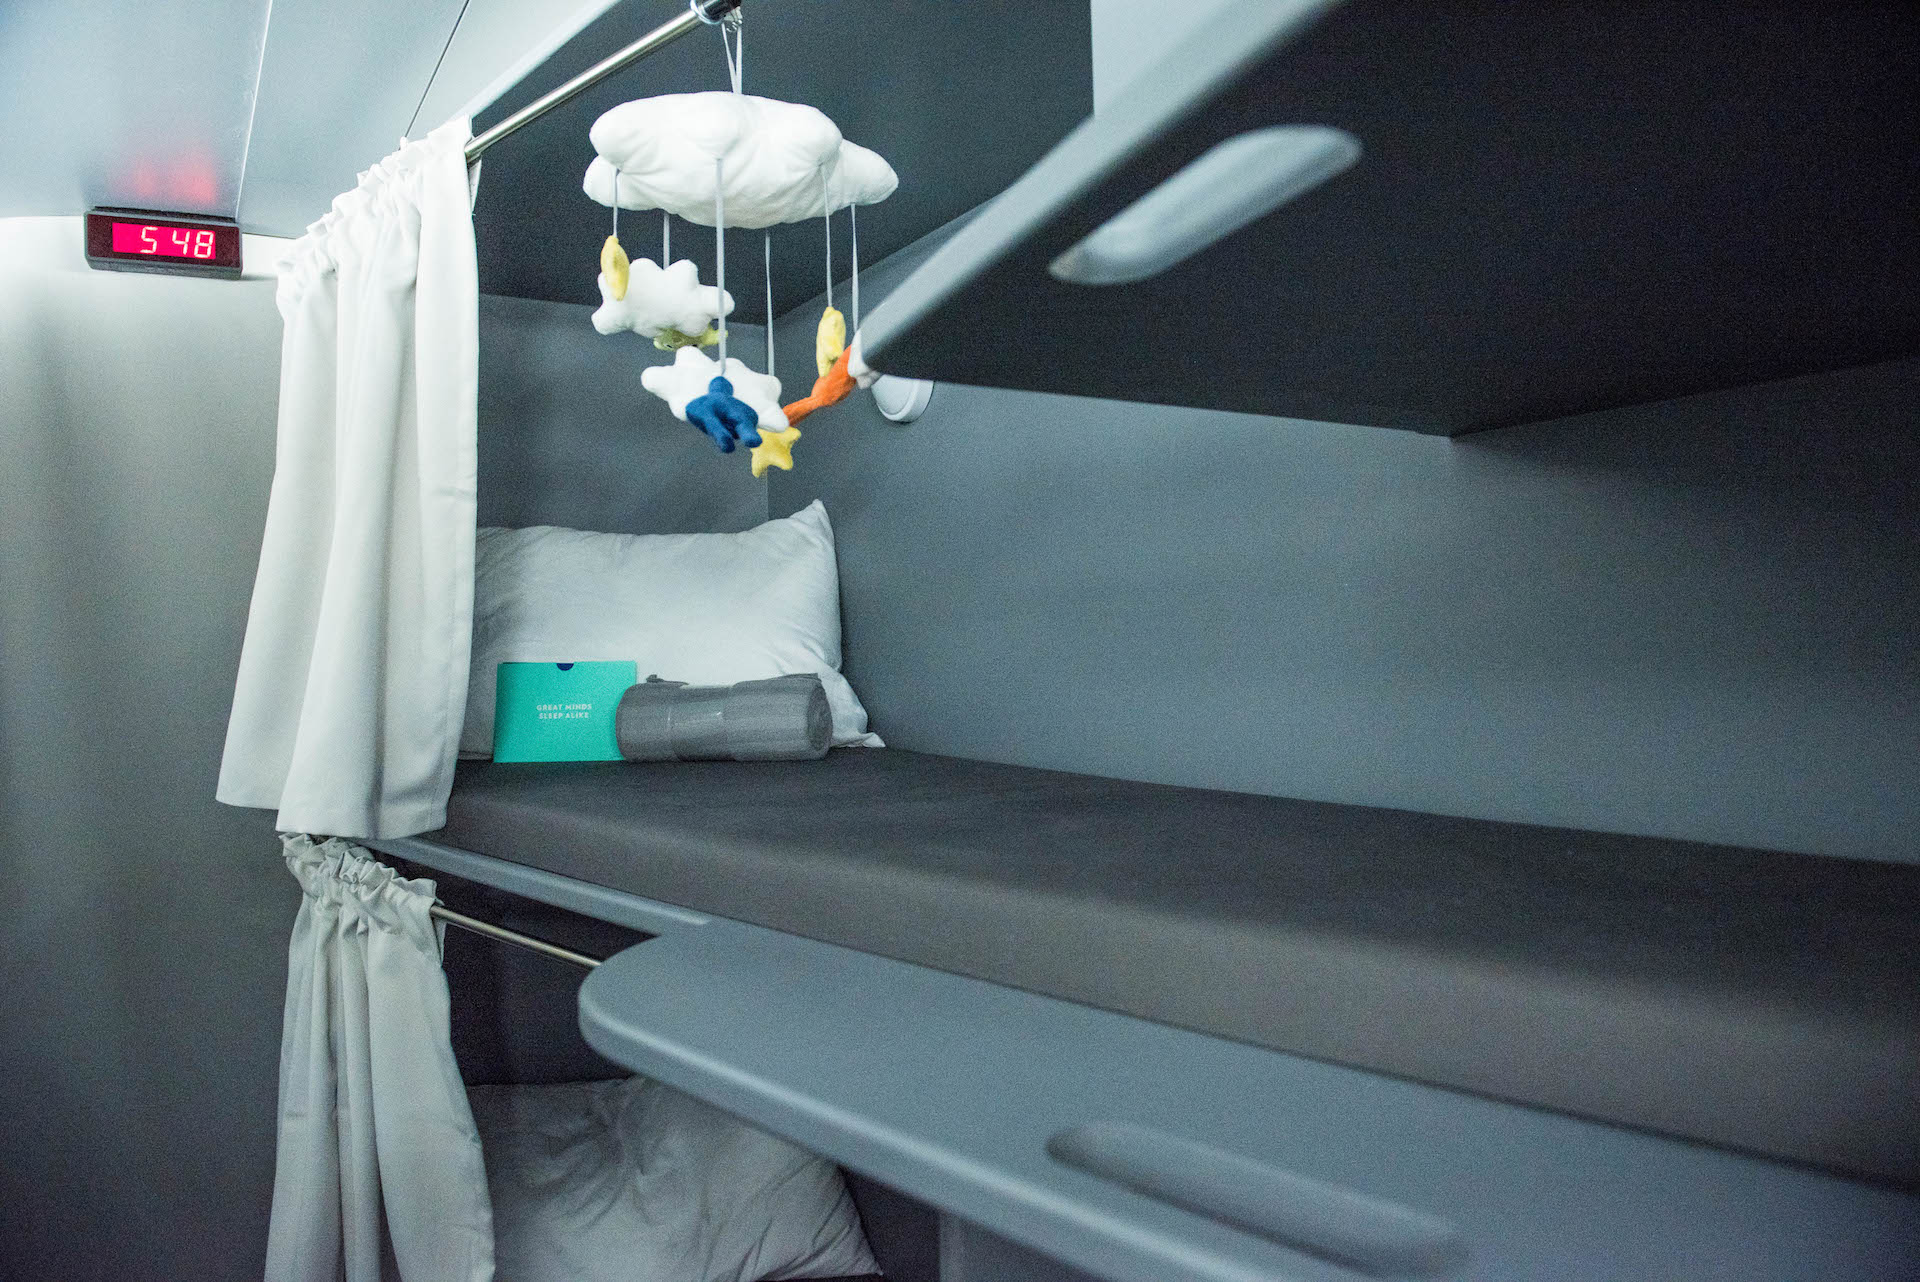 Tucked in the back of the plane there are bunk beds. Yup, you can finally sleep in a real bed during a long haul flight.